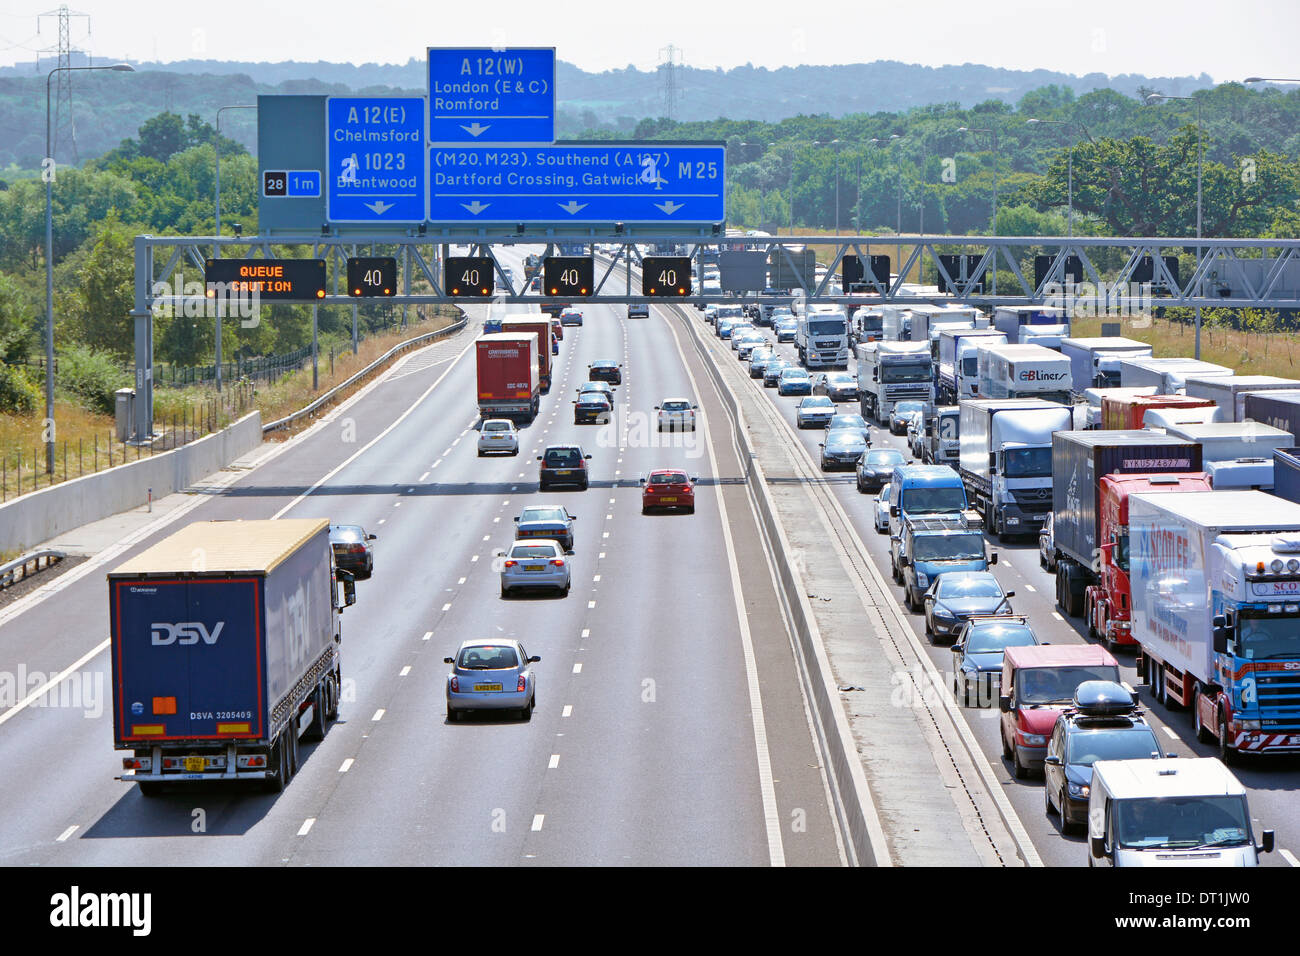 Gantry sign  spanning eight lane M25 motorway at junction 28 with electronic digital display warnings & gridlocked traffic - Stock Image